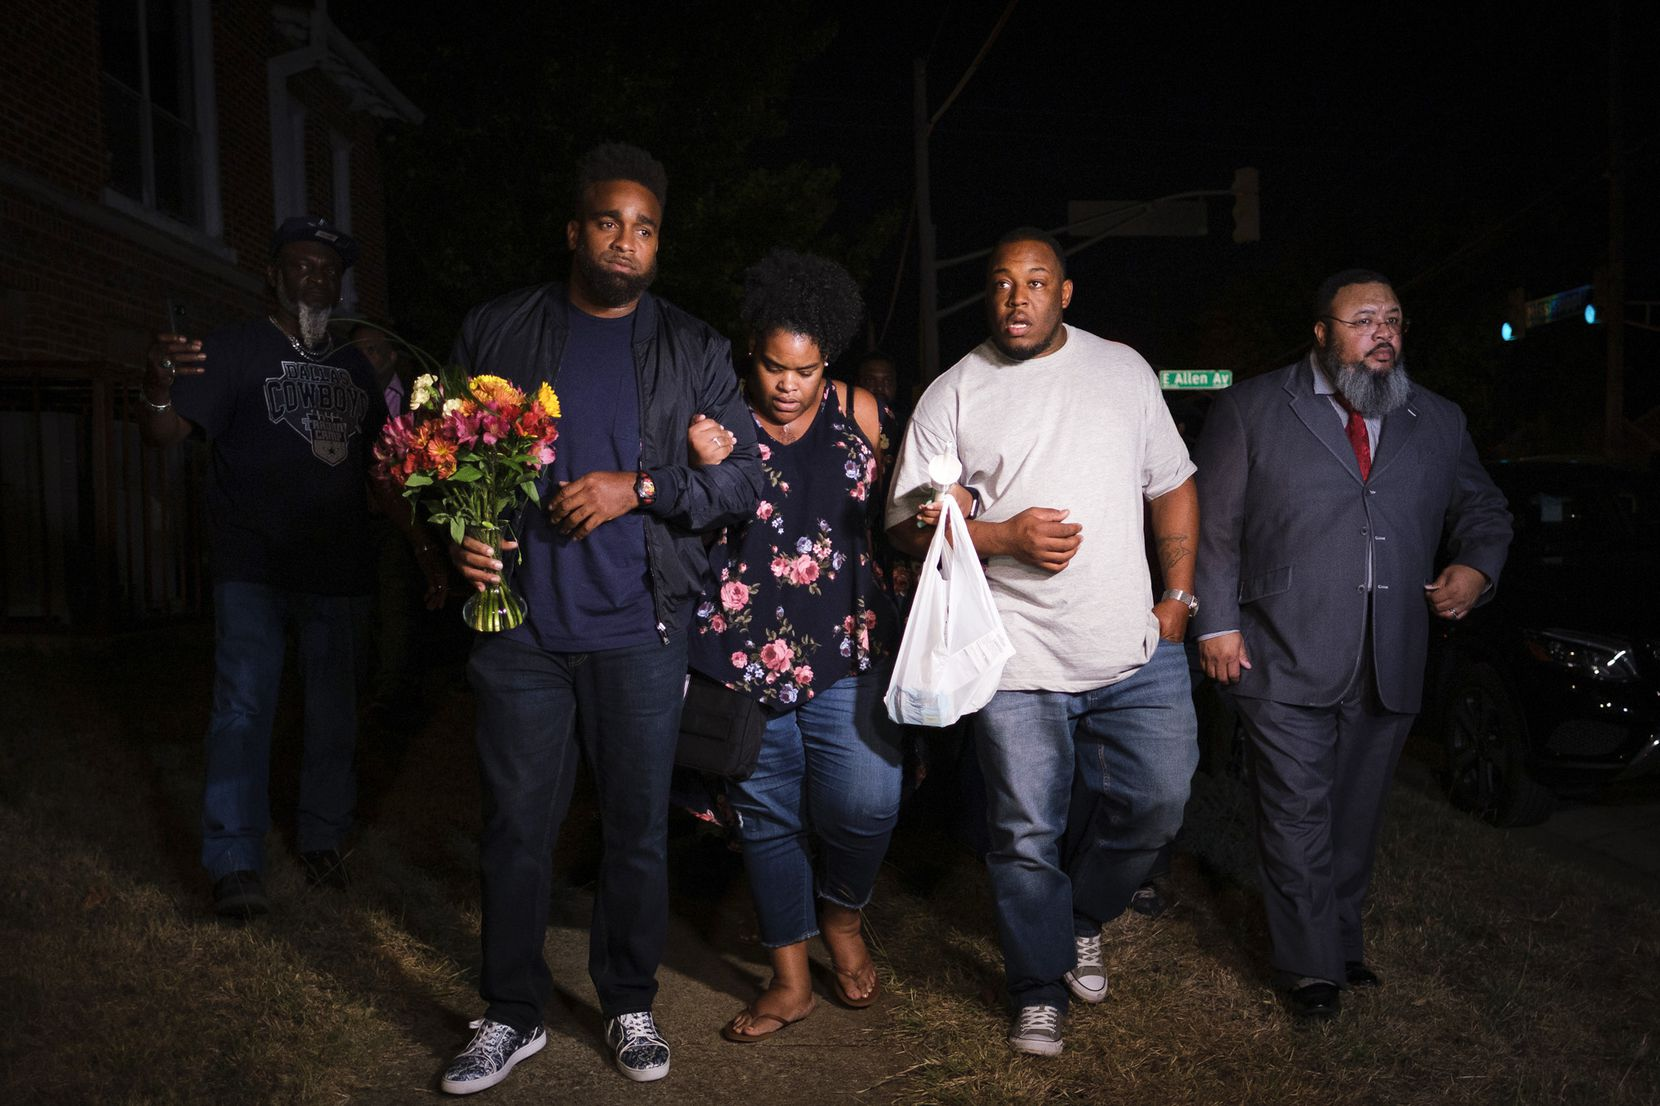 Members of the victimÕs family depart a community vigil for Atatiana Jefferson on Sunday, Oct. 13, 2019, in Fort Worth.